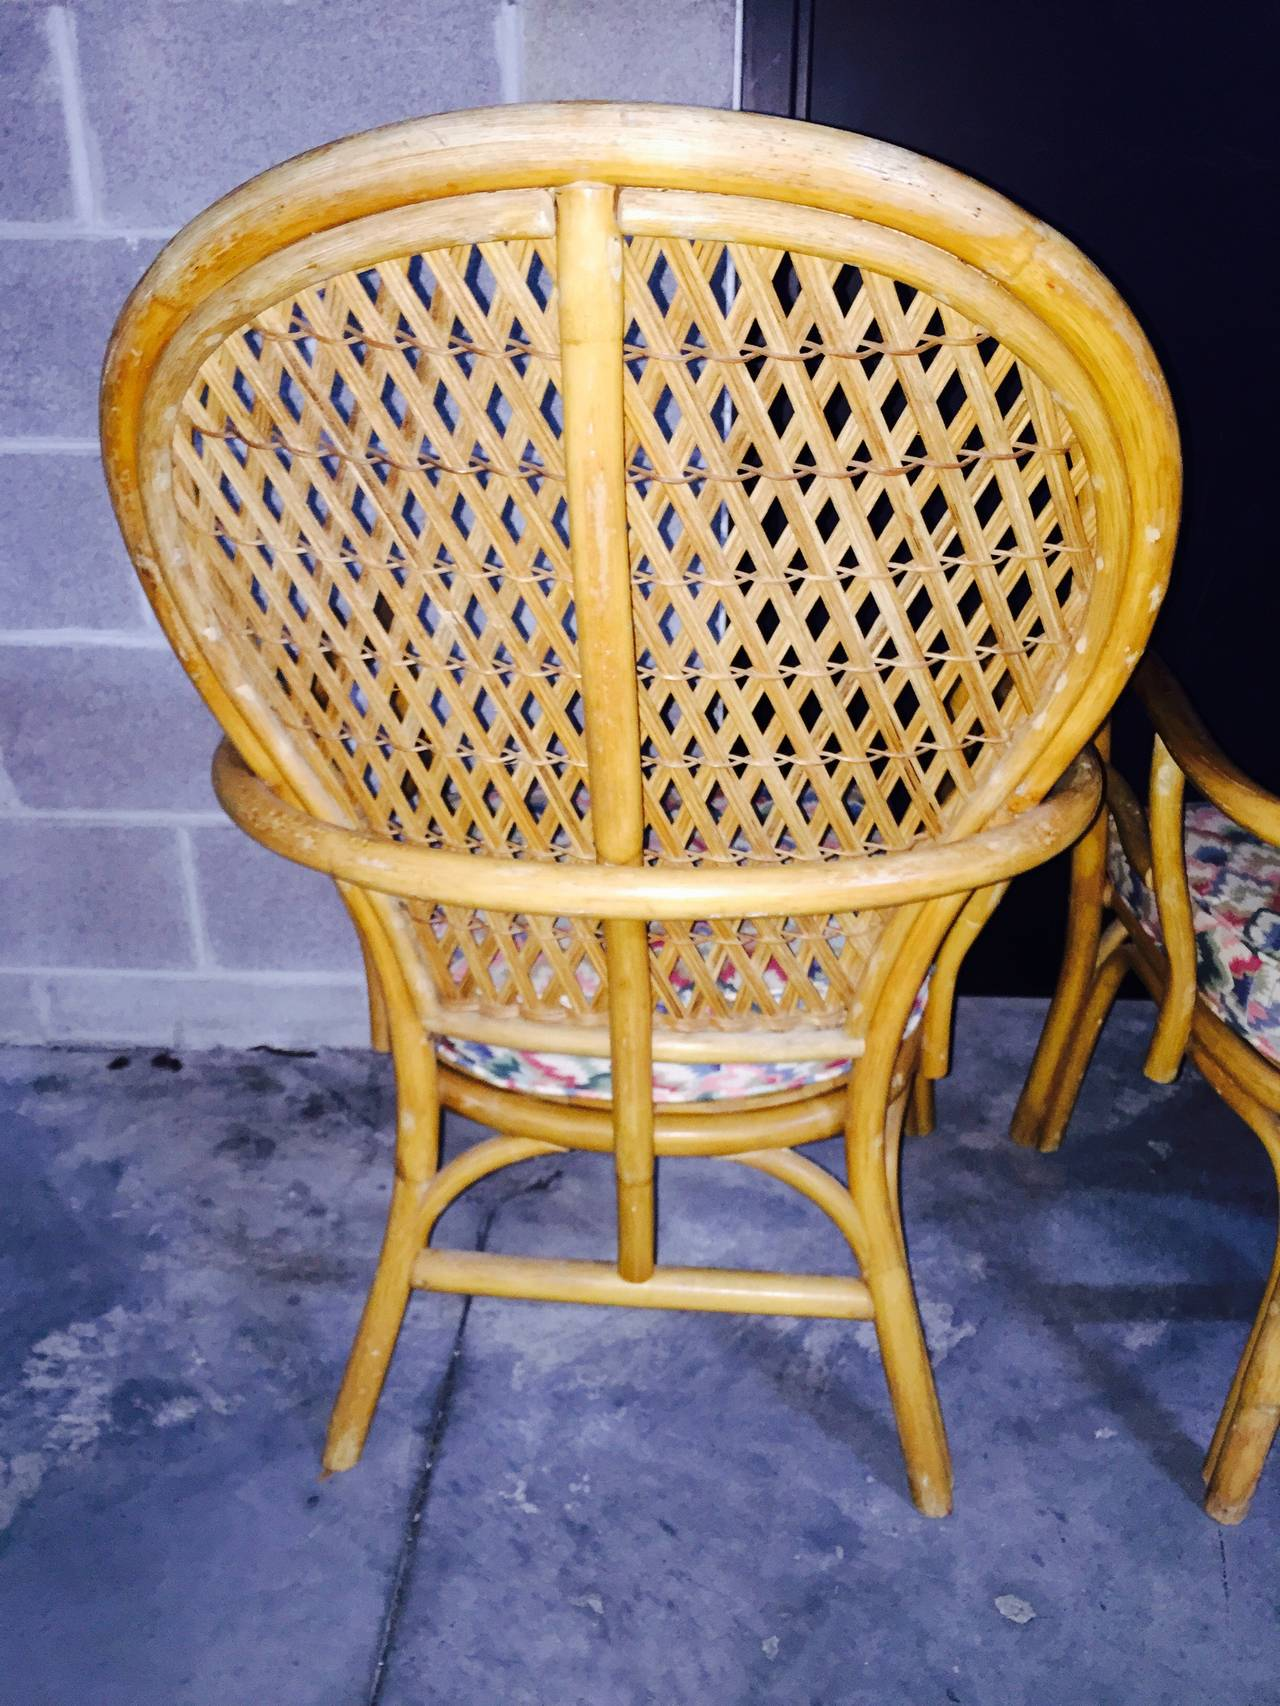 Pair of Sculptural Rattan Wicker Lounge Chairs at 1stdibs